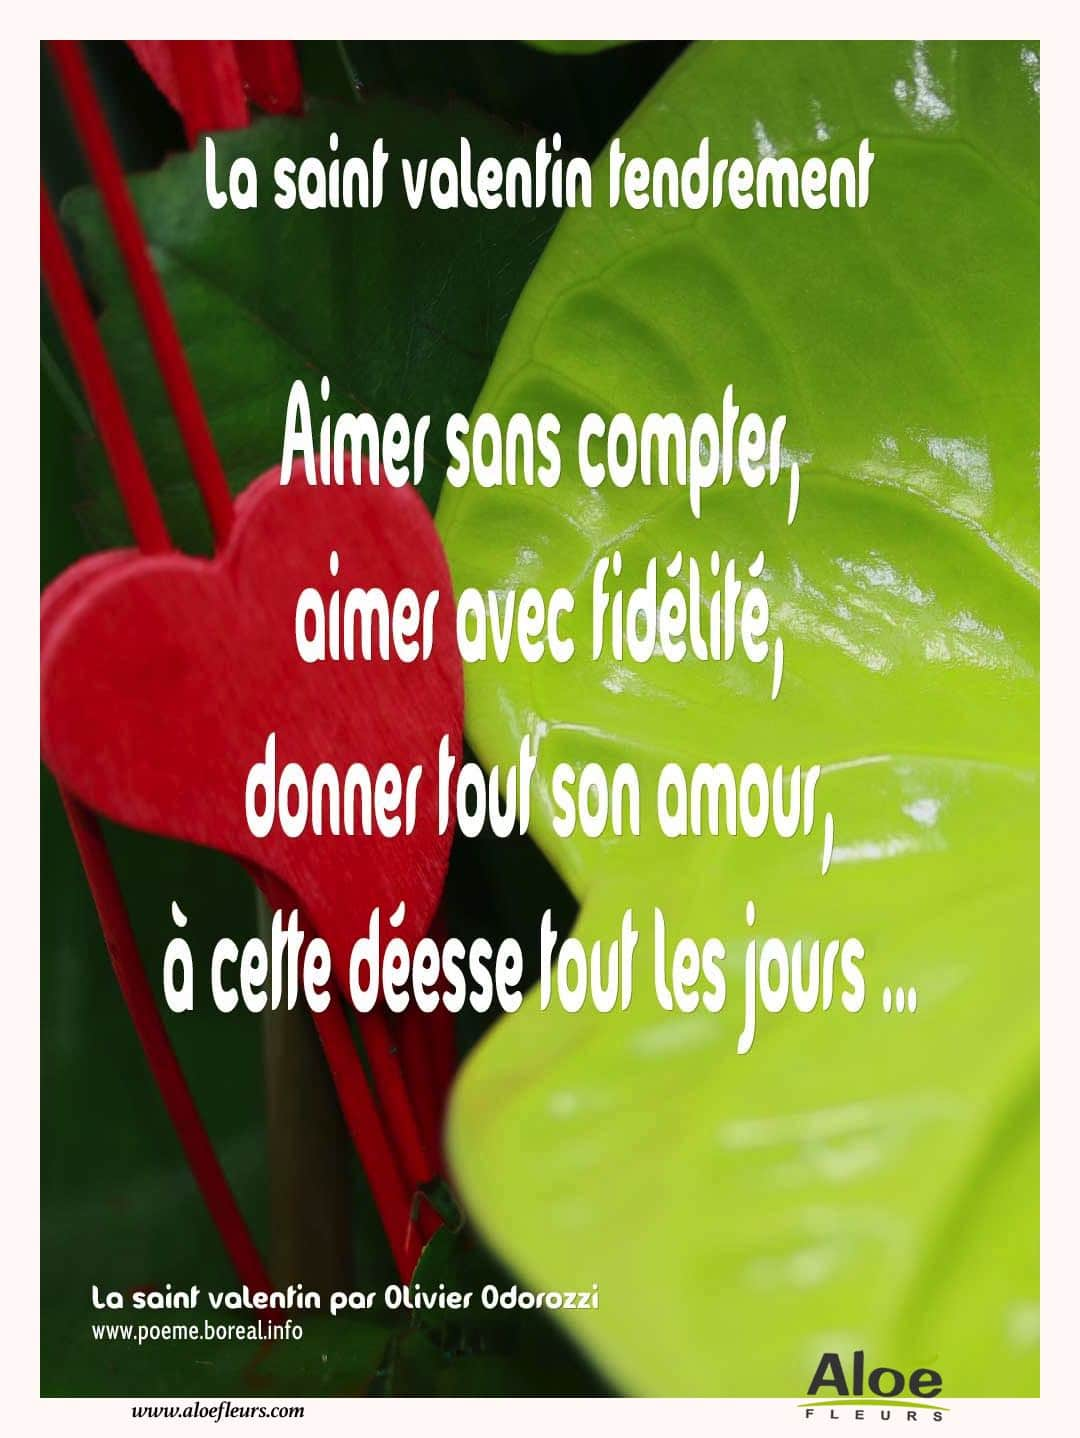 Citations D'amour Et Saint Valentin  La Saint Valentin Tendrement